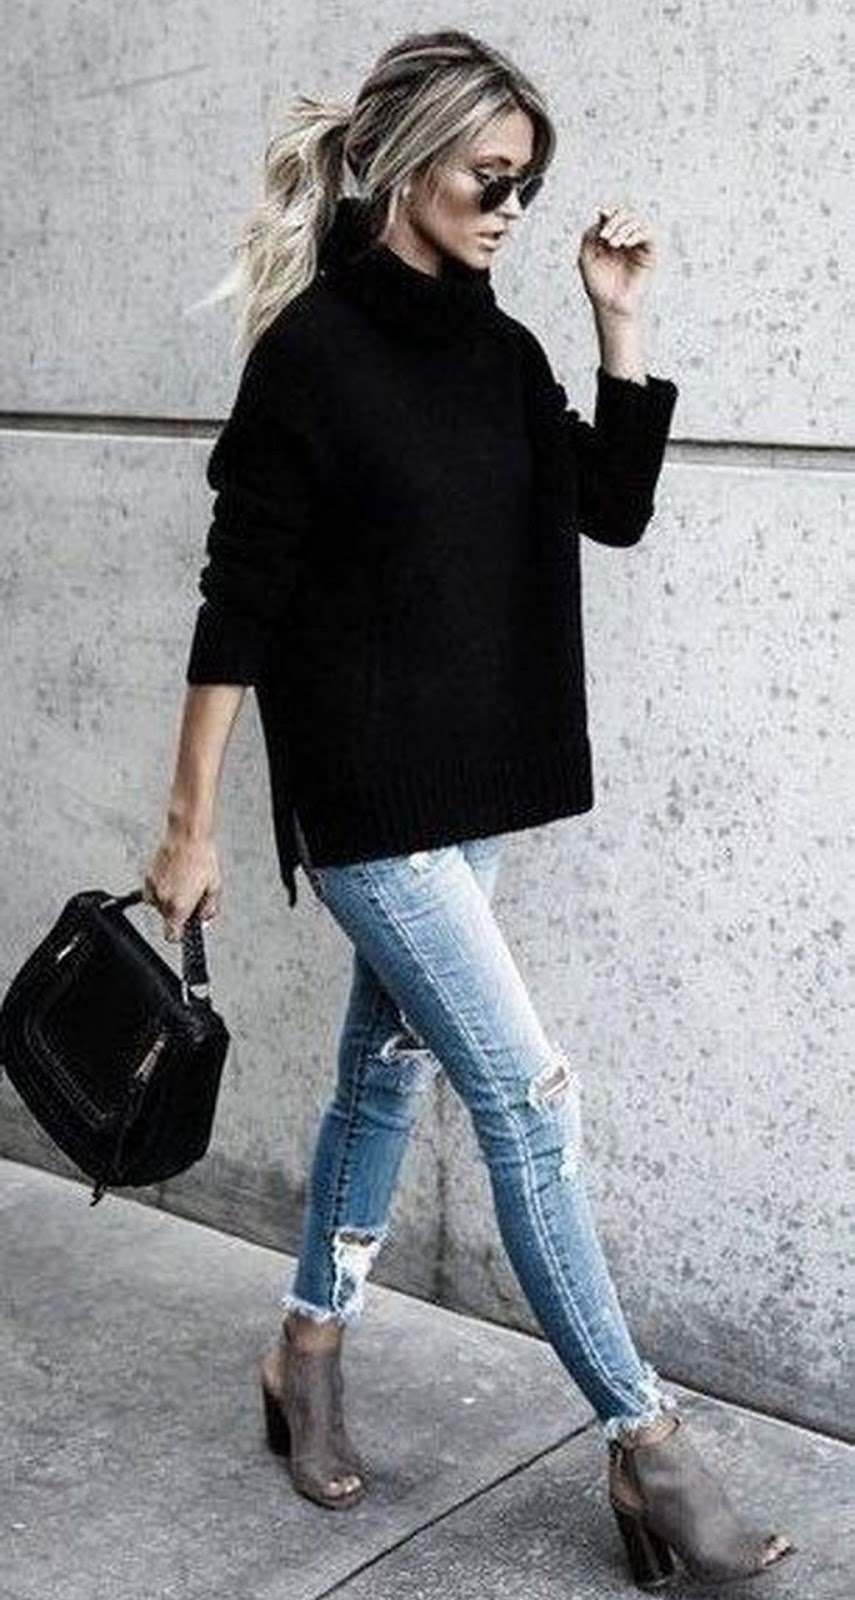 stylish look | black oversized sweater + ripped jeans + bag + heels